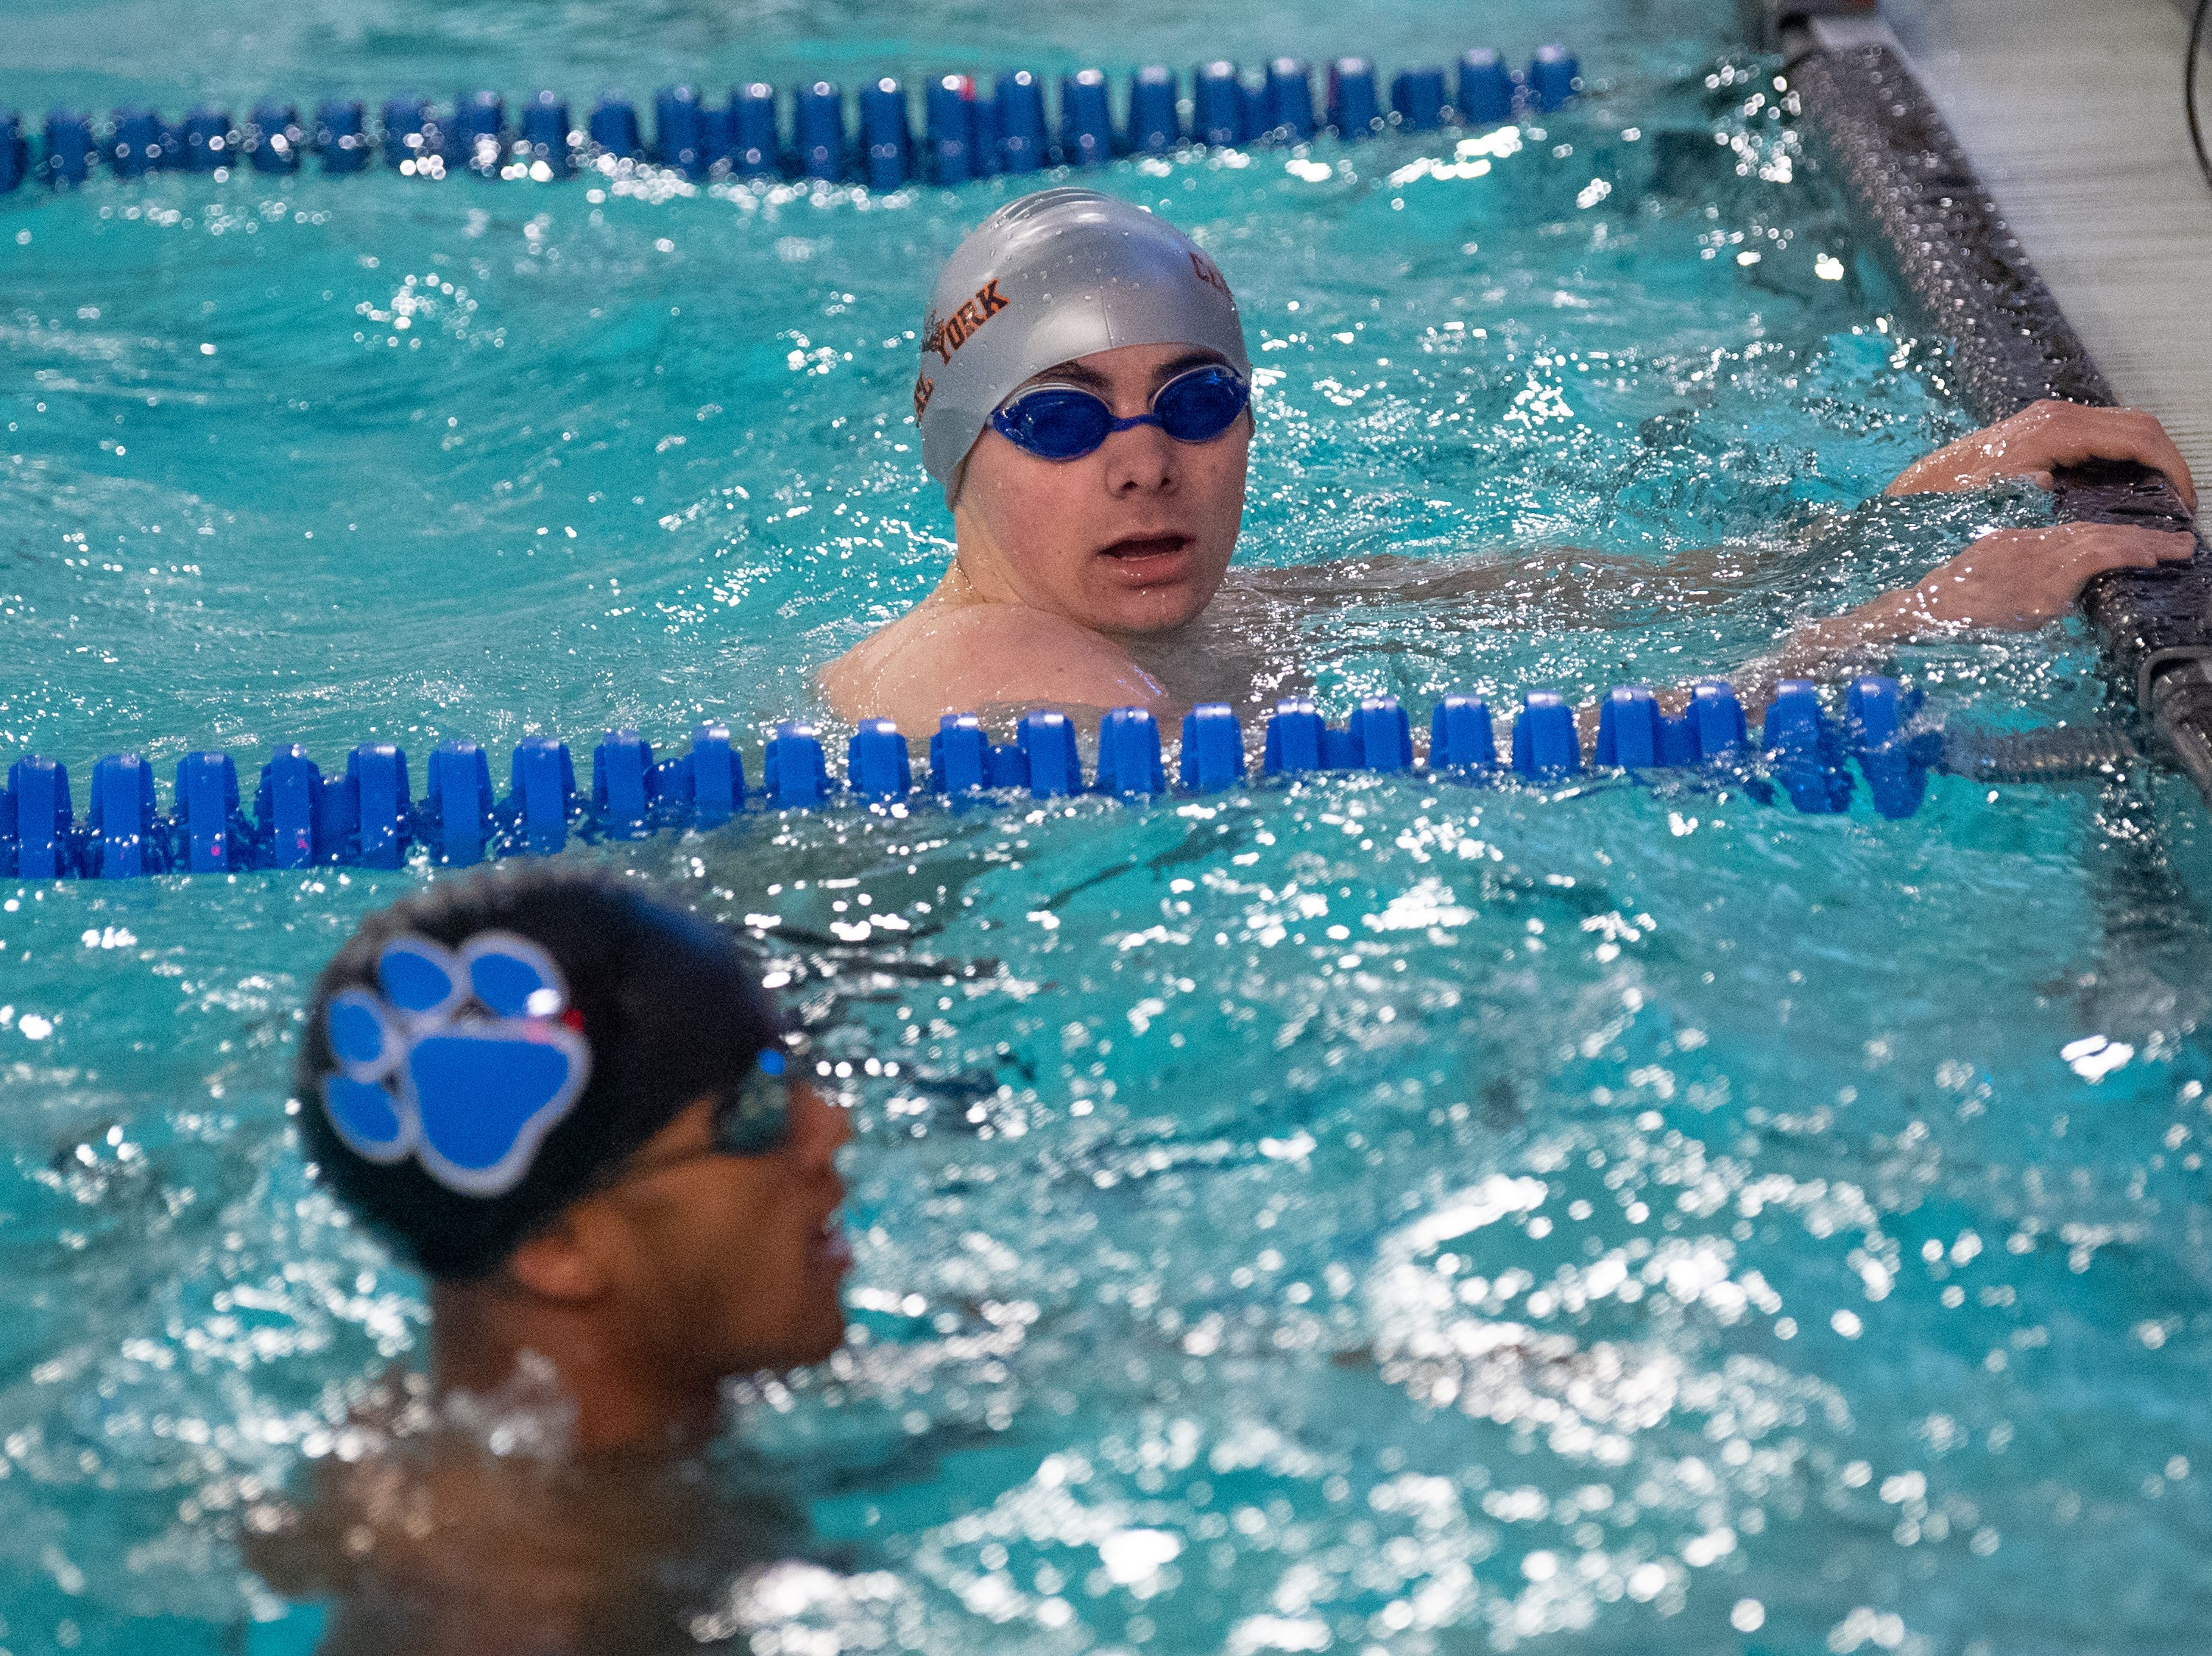 Cody Beck finishes the third leg of the relay behind Dallastown during the boys' and girls' swim meet, January 10, 2019. The Panthers defeated the Wildcats 93 to 77 and the Lady Panthers defeated the Lady Wildcats 96 to 74.